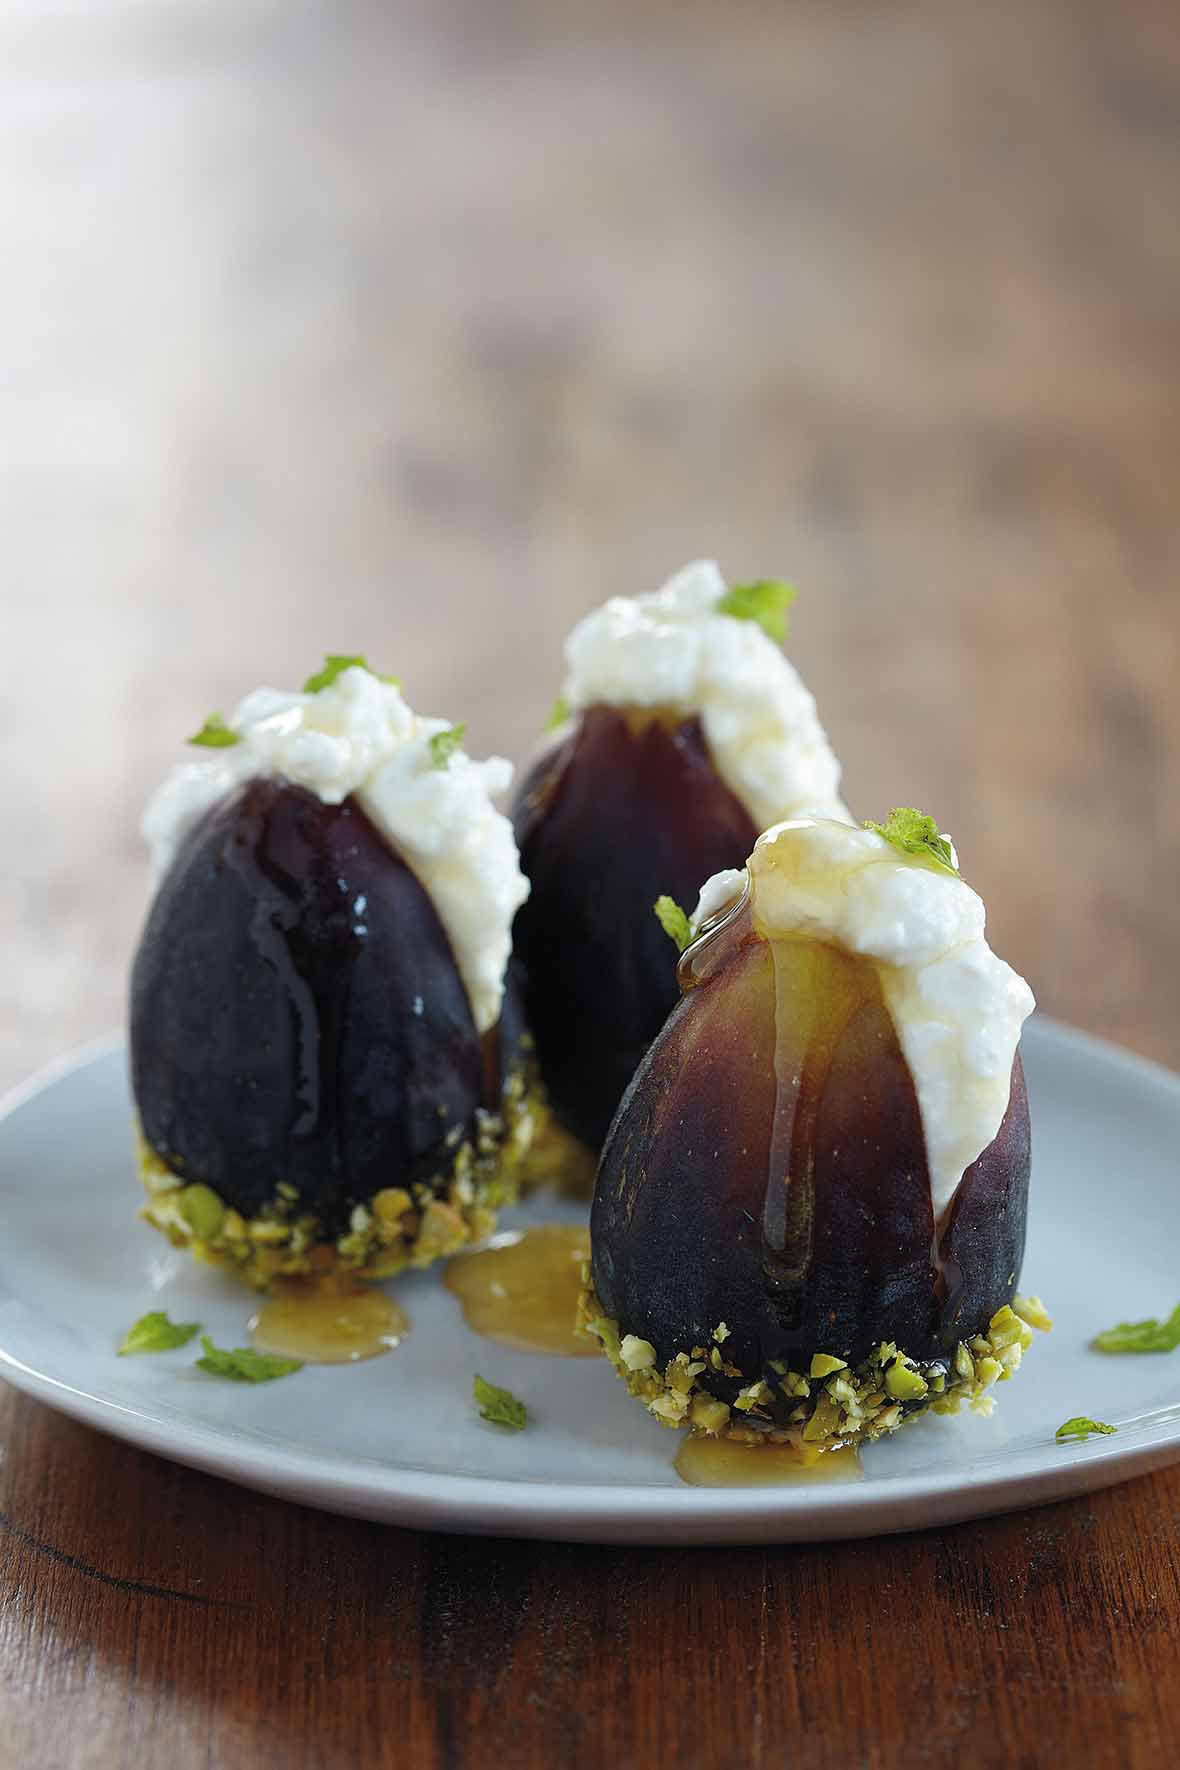 Three fresh figs with ricotta and honey and dipped in pistachios on a white plate